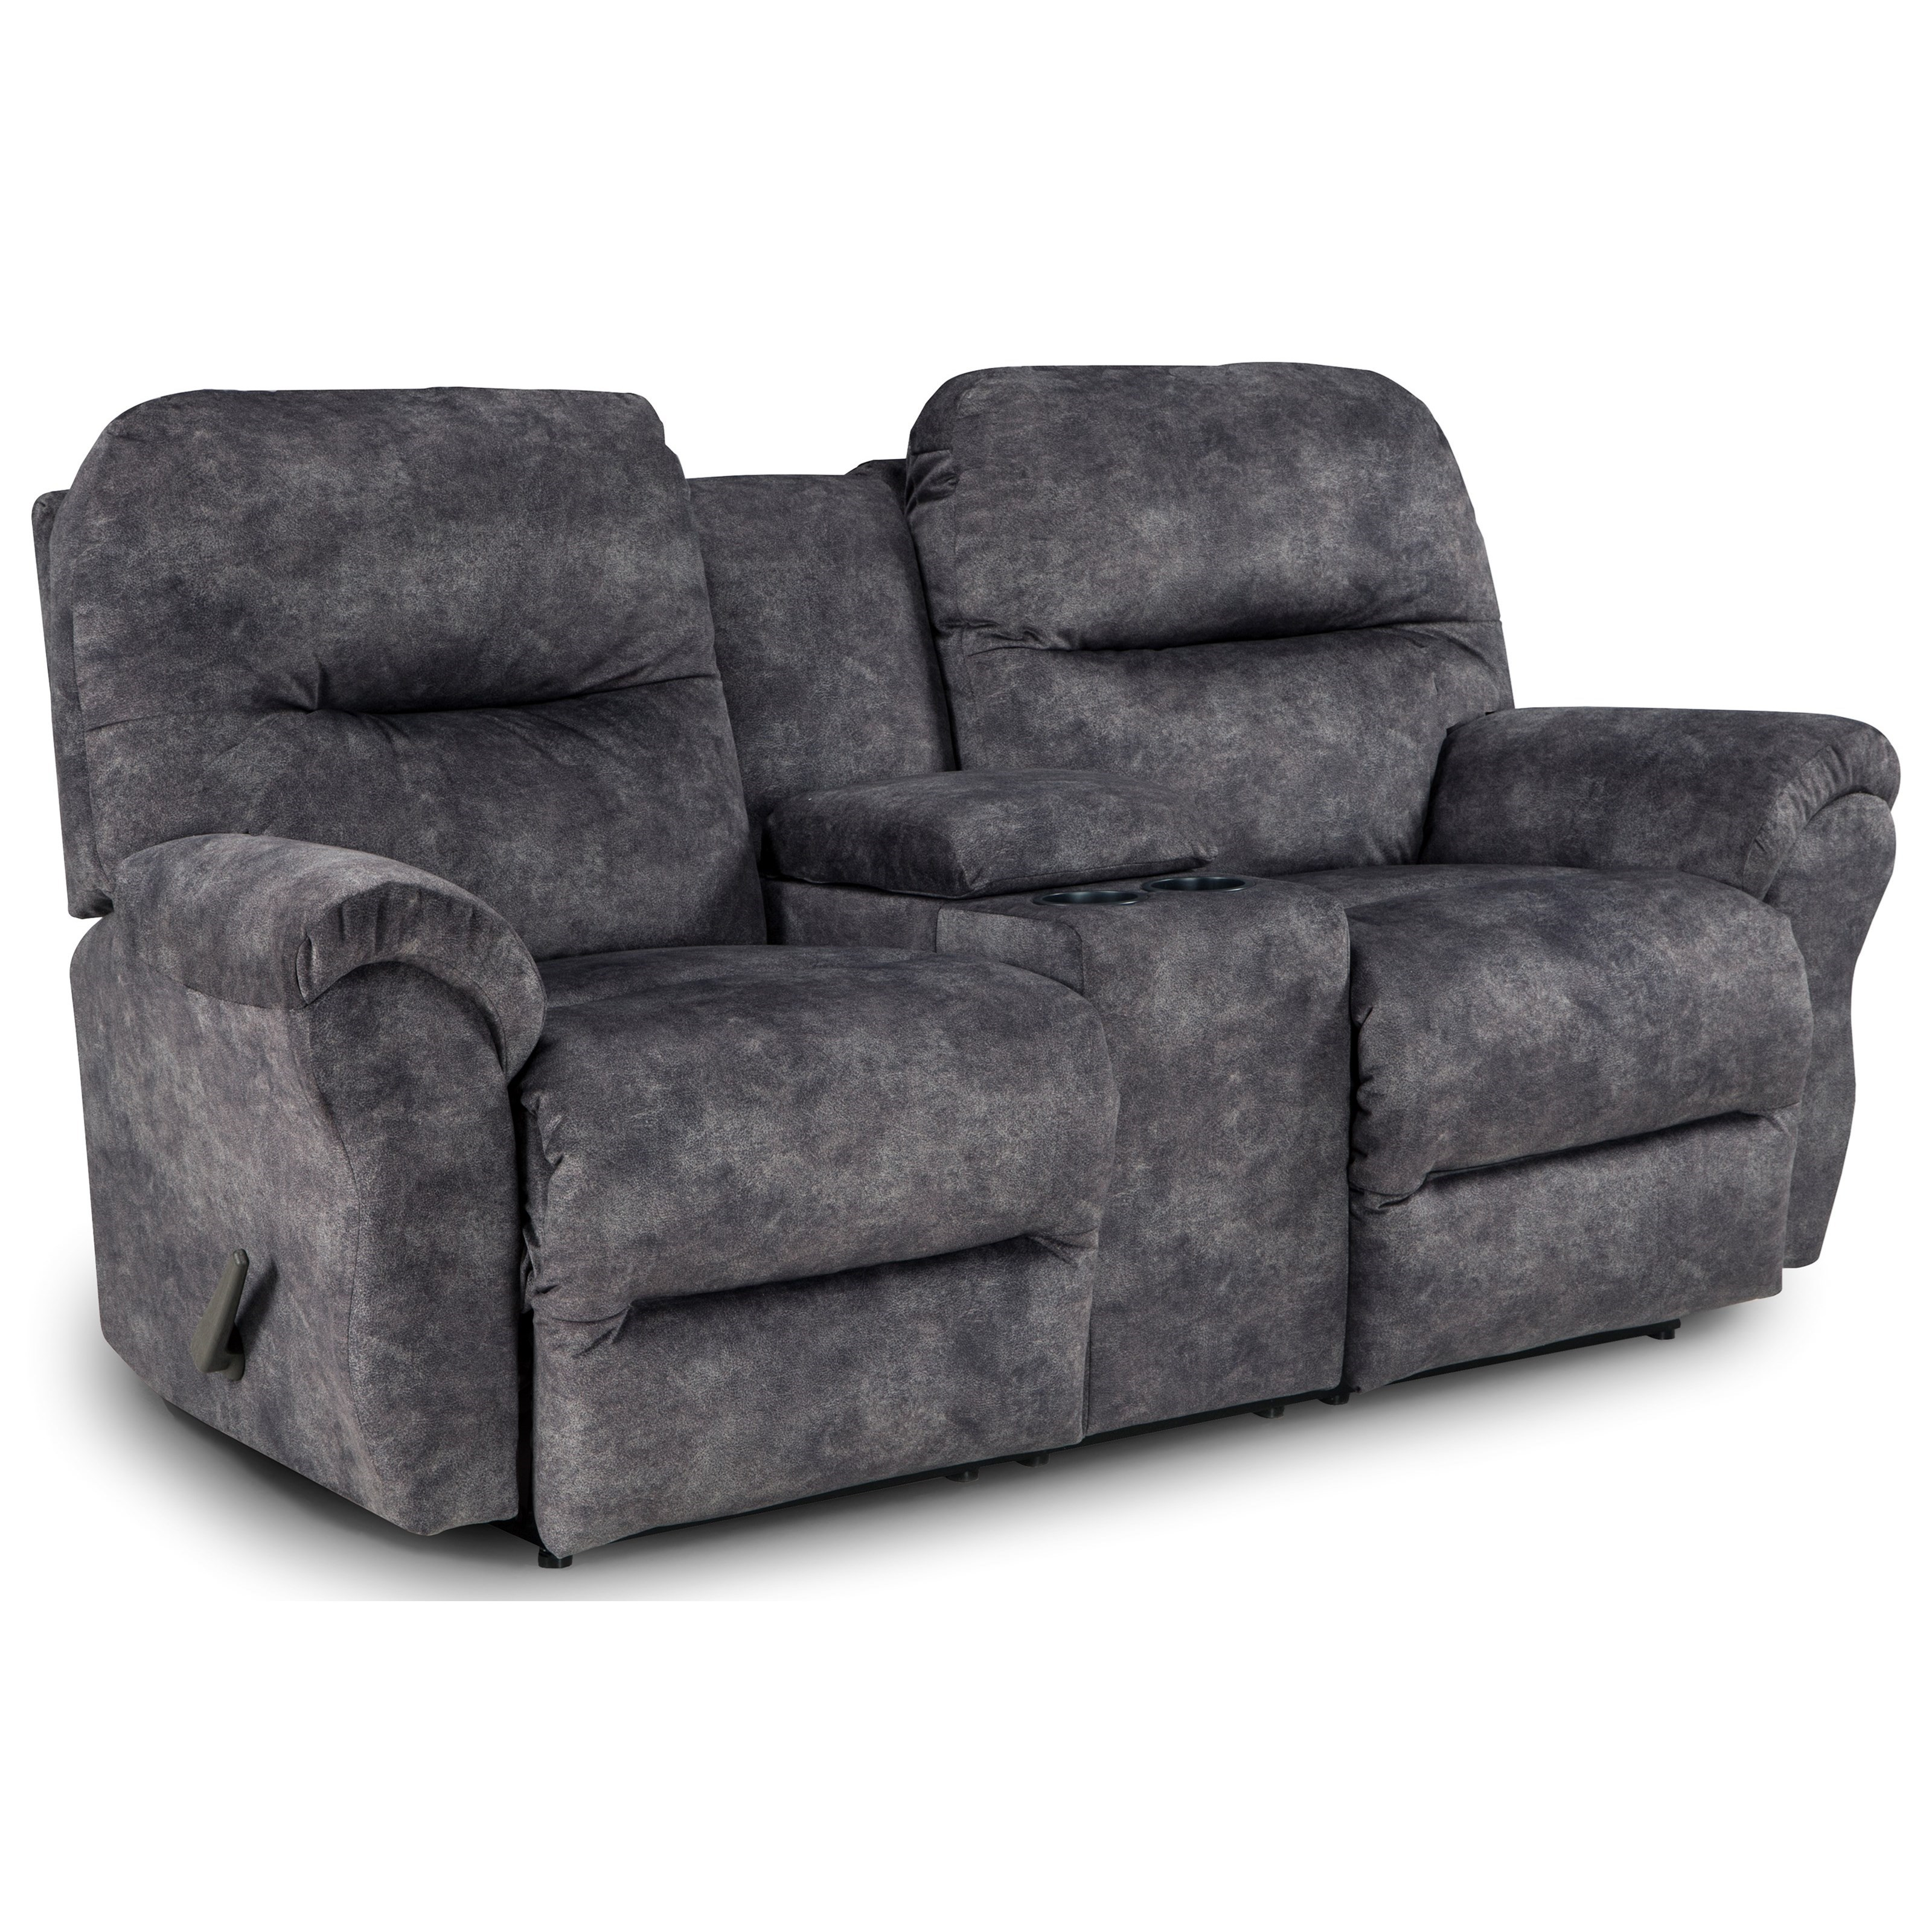 Bodie Power Rocking Reclining Loveseat w/ Console by Best Home Furnishings at Virginia Furniture Market